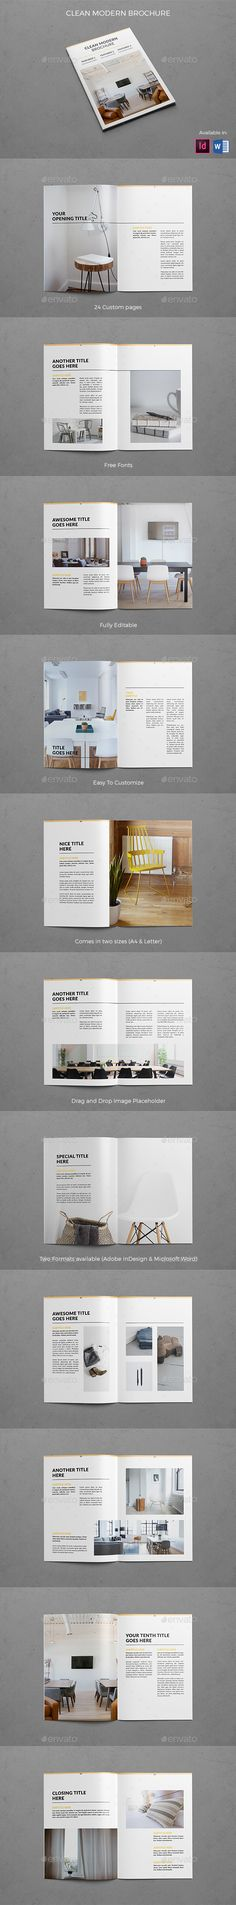 Clean Modern Brochure Template InDesign INDD